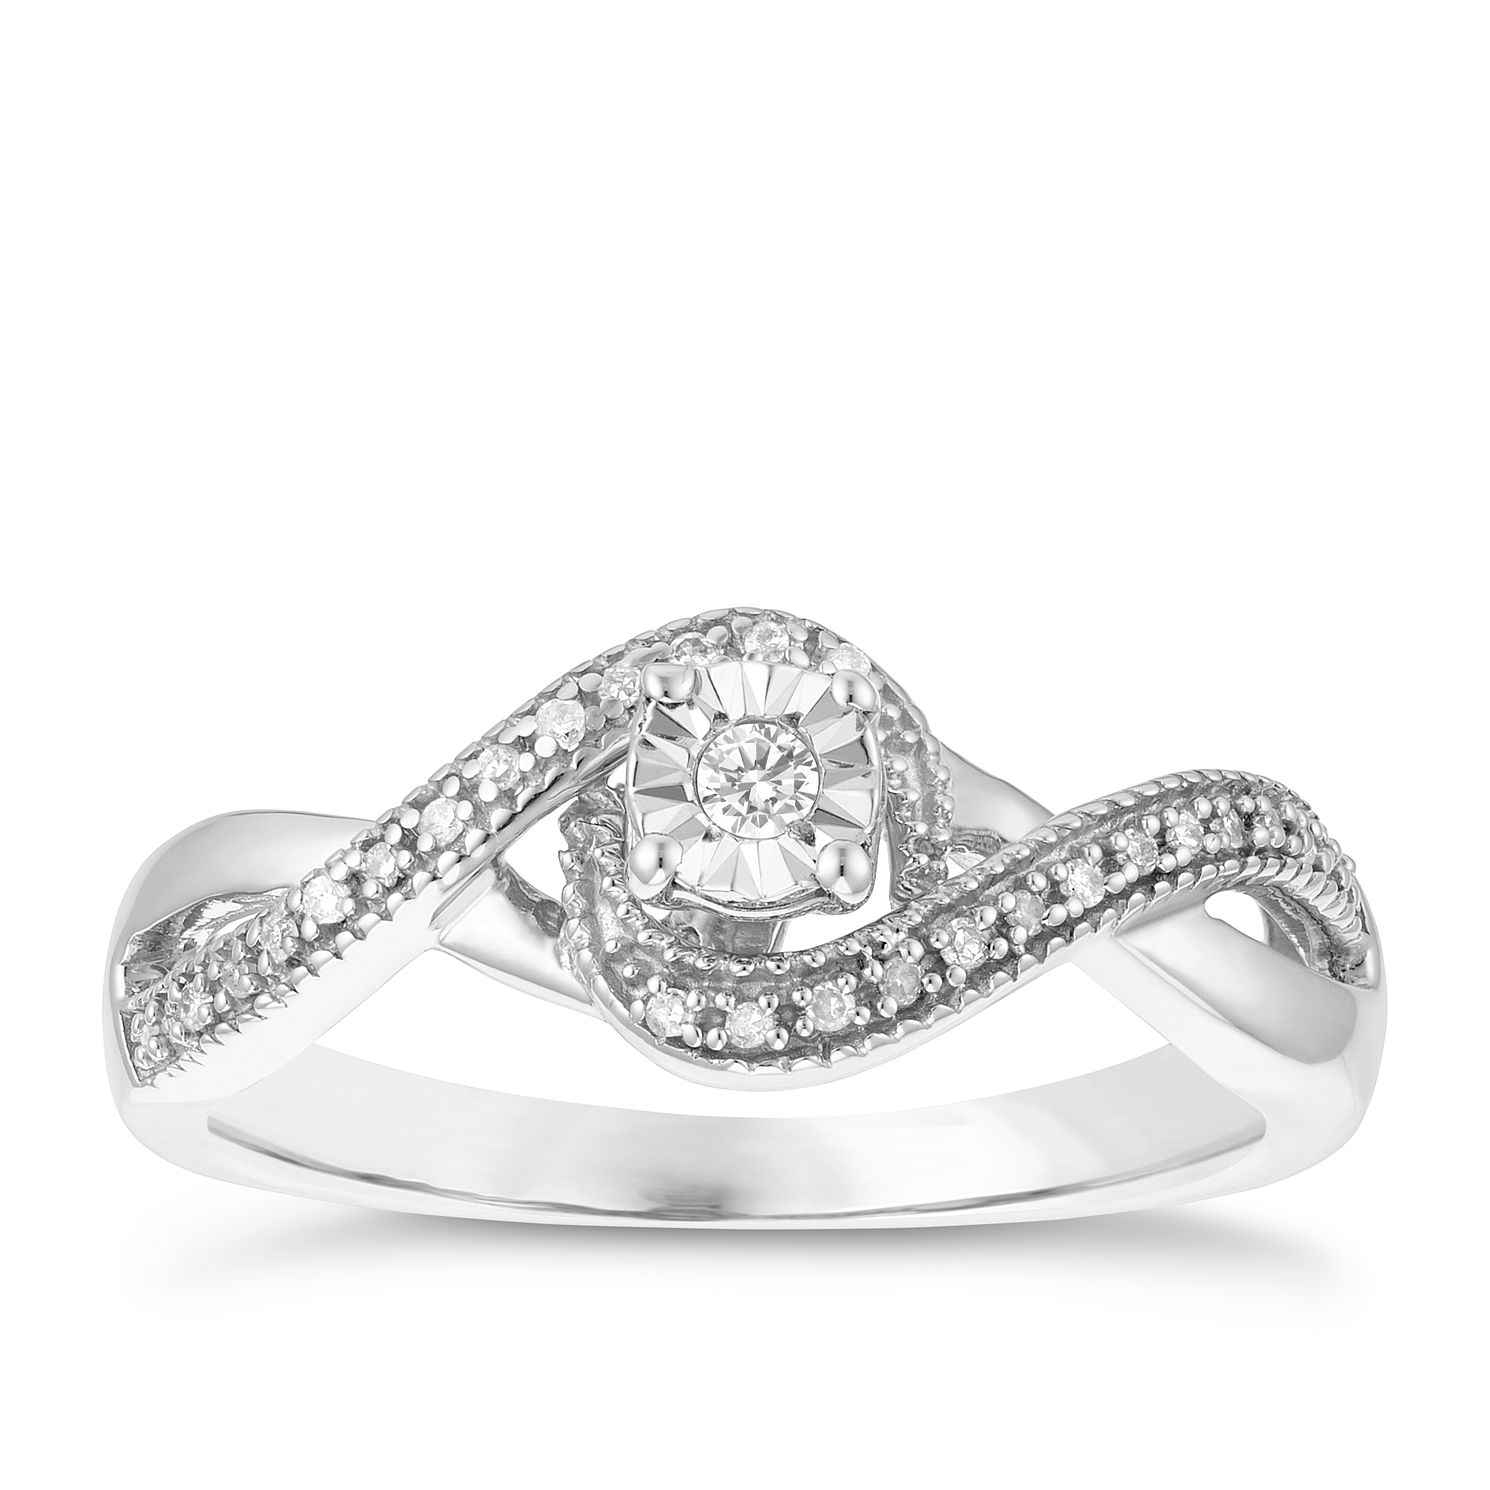 9ct White Gold Diamond Twist Solitaire Ring - Product number 3877256